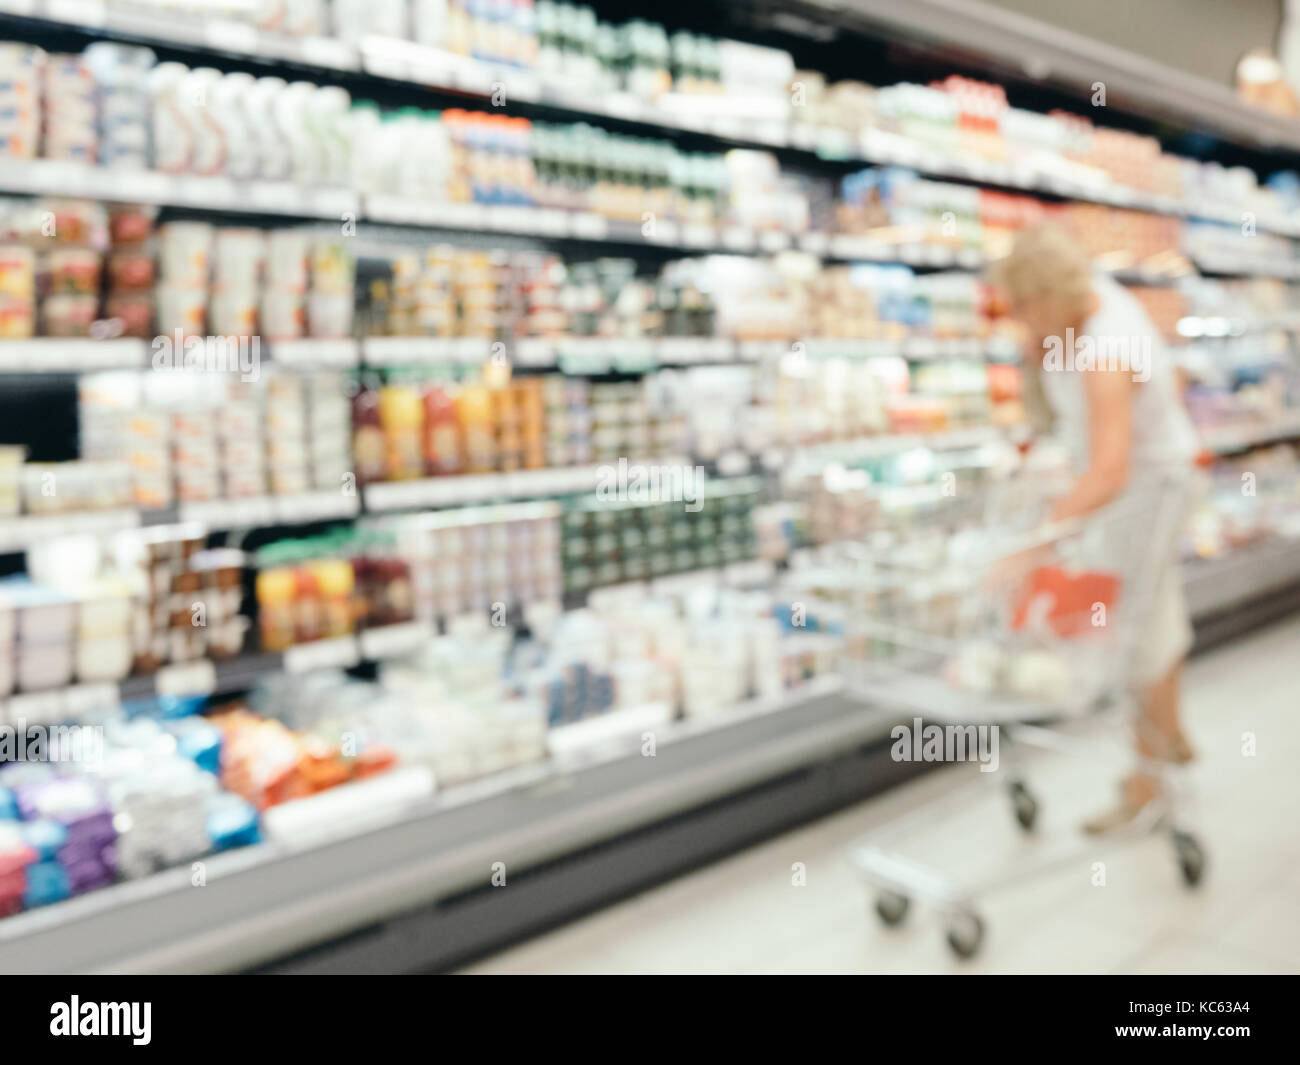 Super Dairy Stock Photos & Super Dairy Stock Images - Alamy